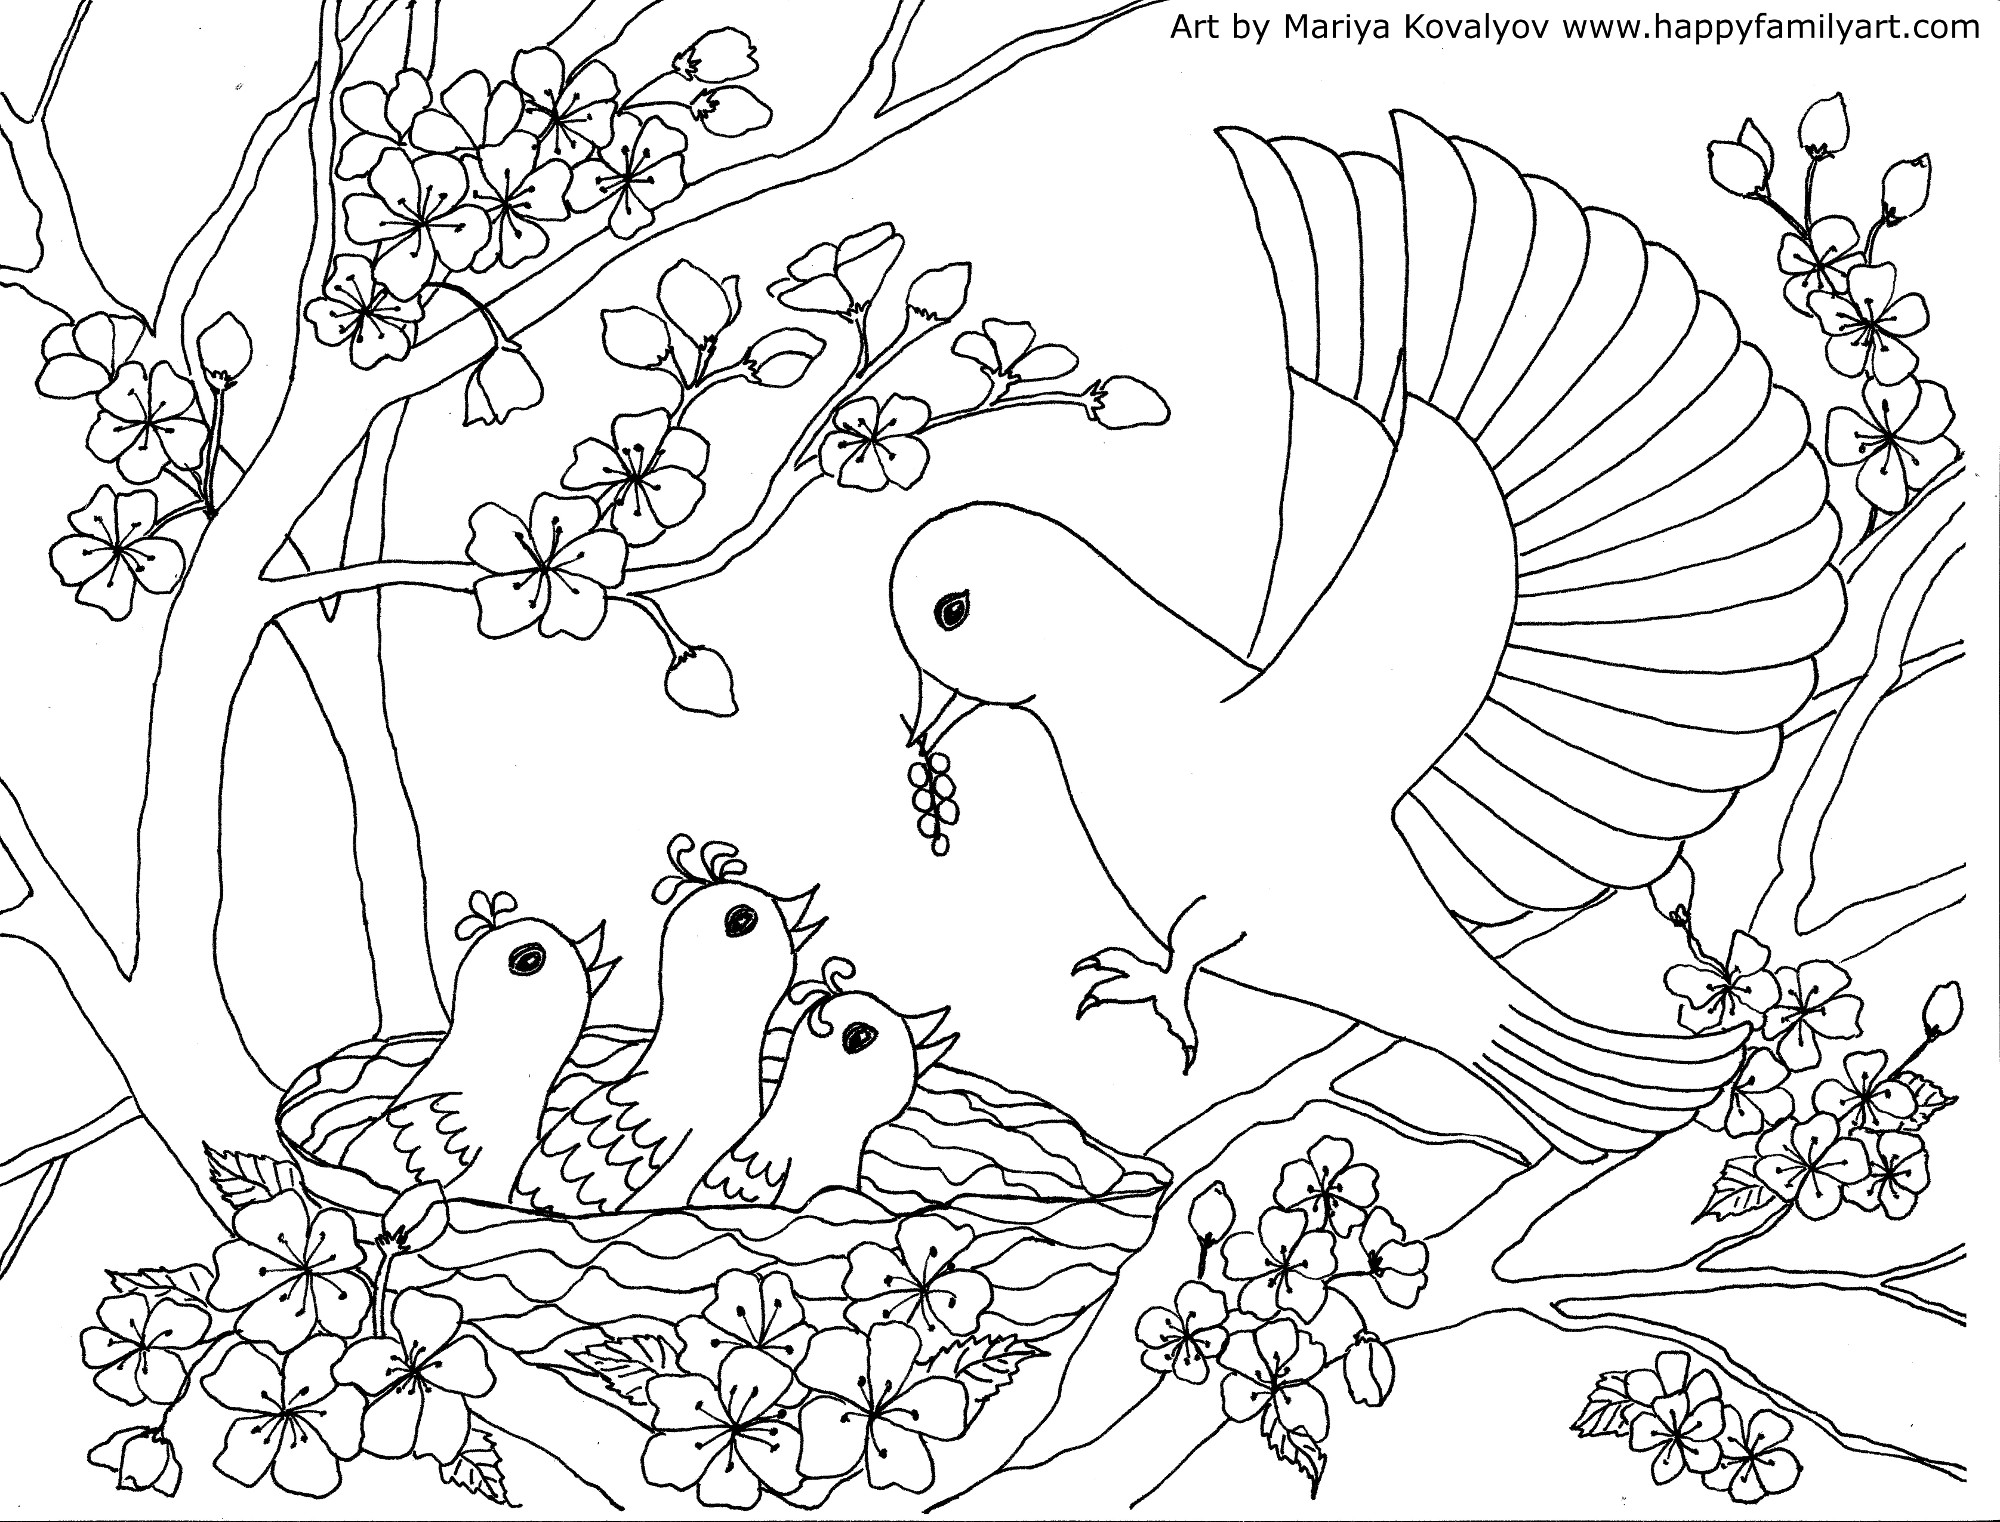 template for winter bird art lesson.... | Bird drawings, Bird ... | 1522x2000